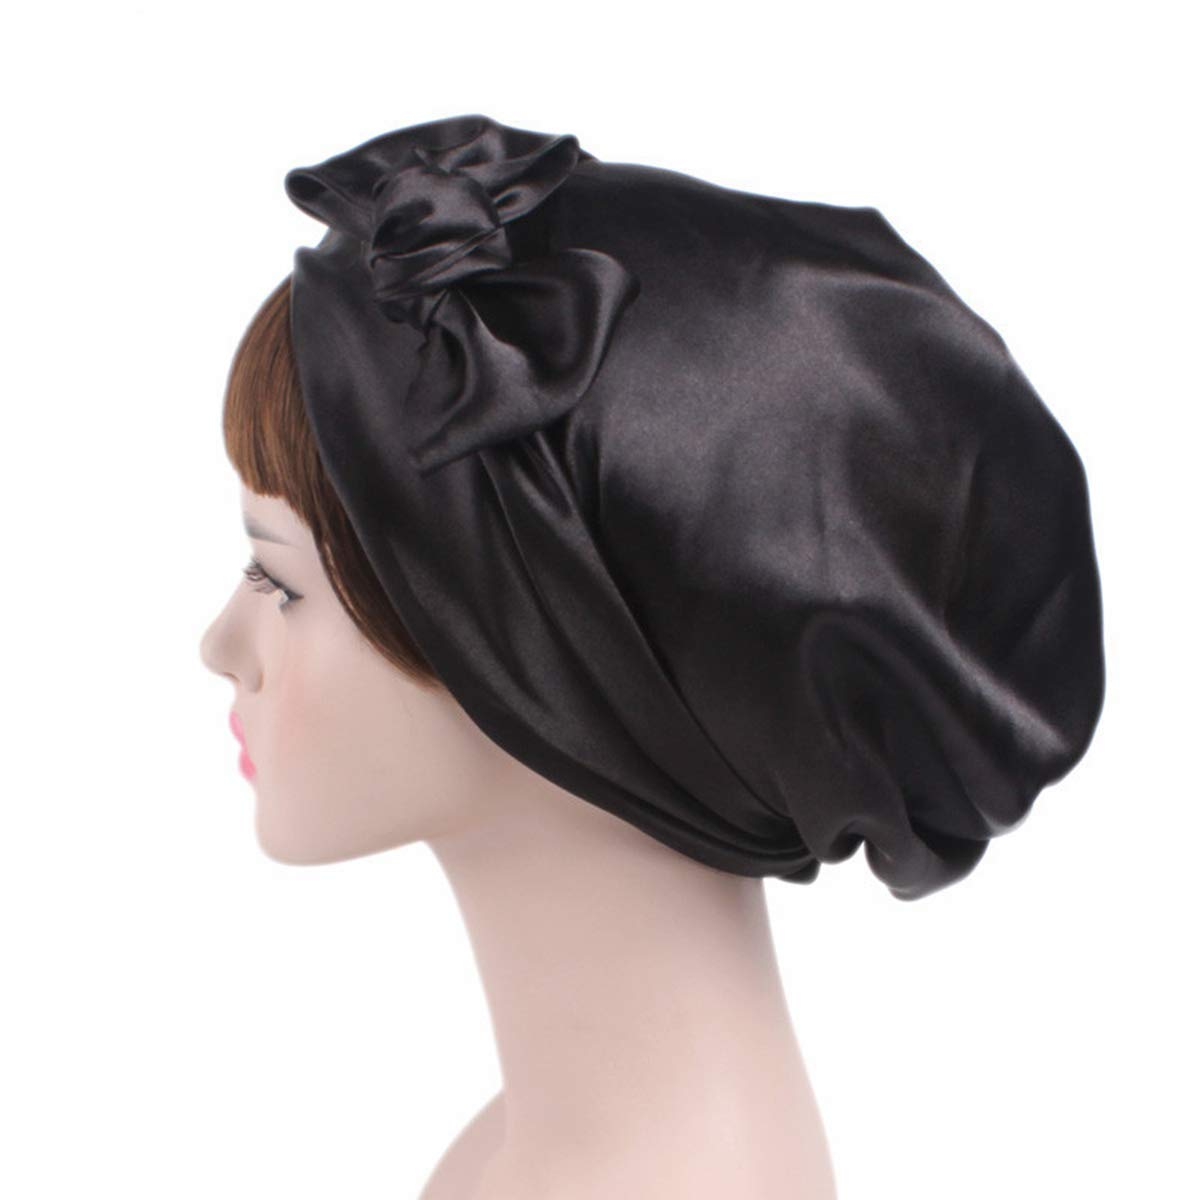 MAIPOETYRY Women Soft Satin Sleeping Cap Salon Bonnet with Long Drawstring Headwear